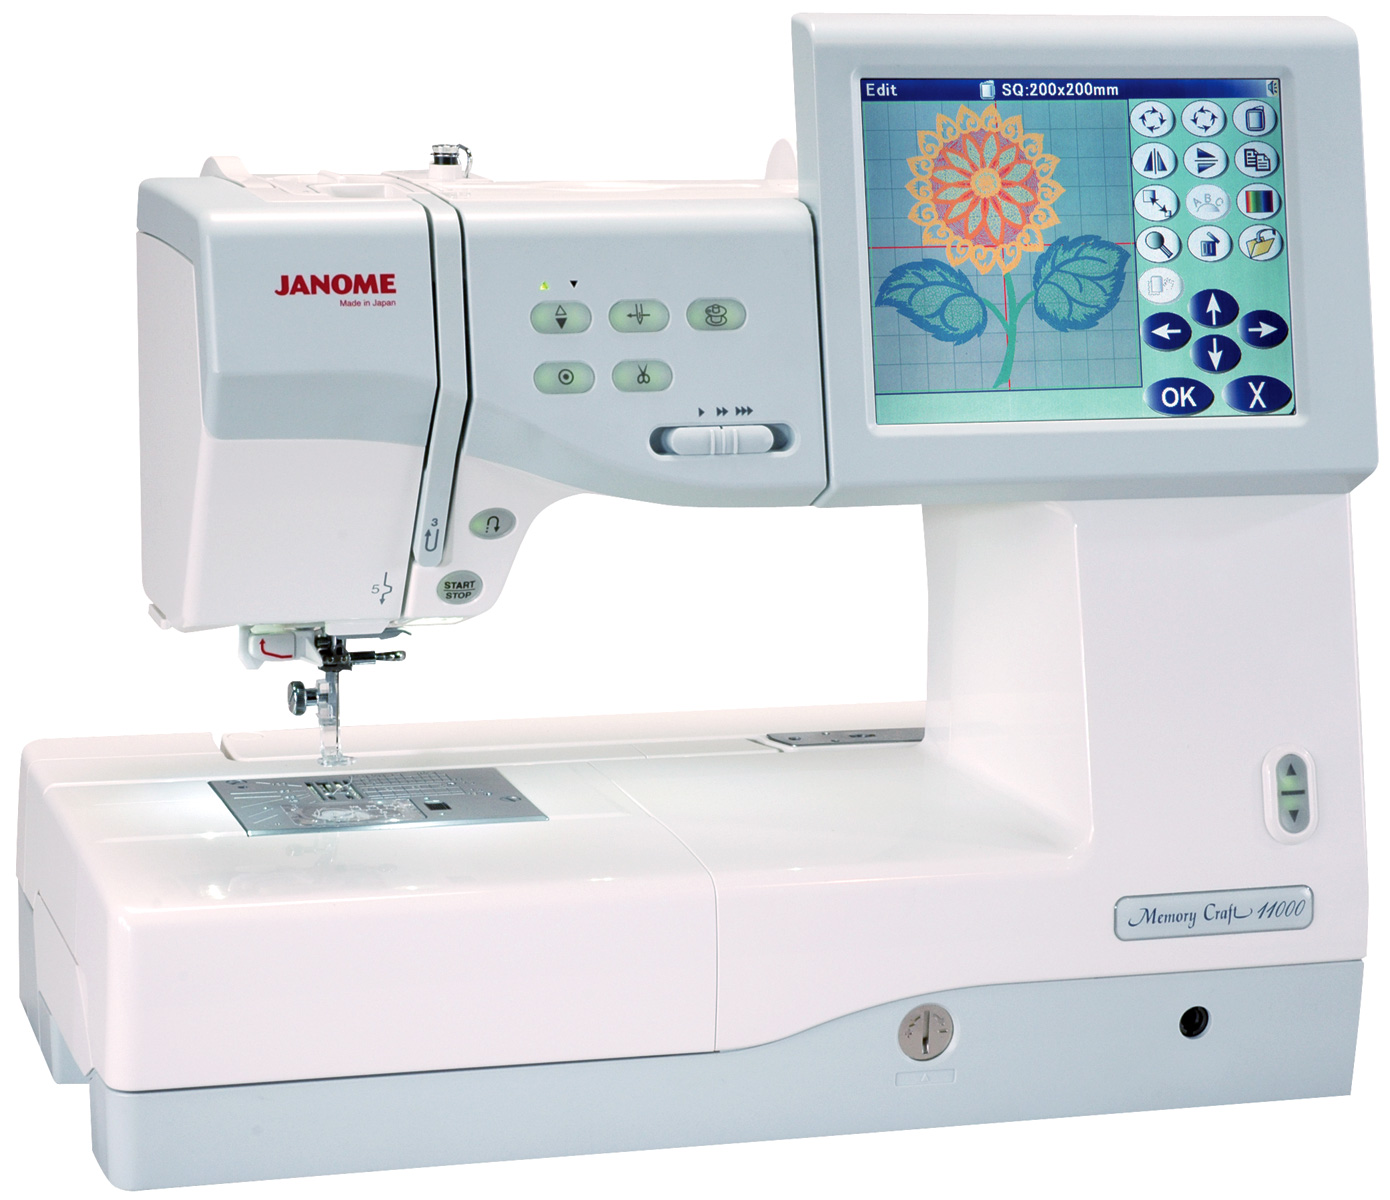 janome memory craft 11000 embroidery and sewing machine